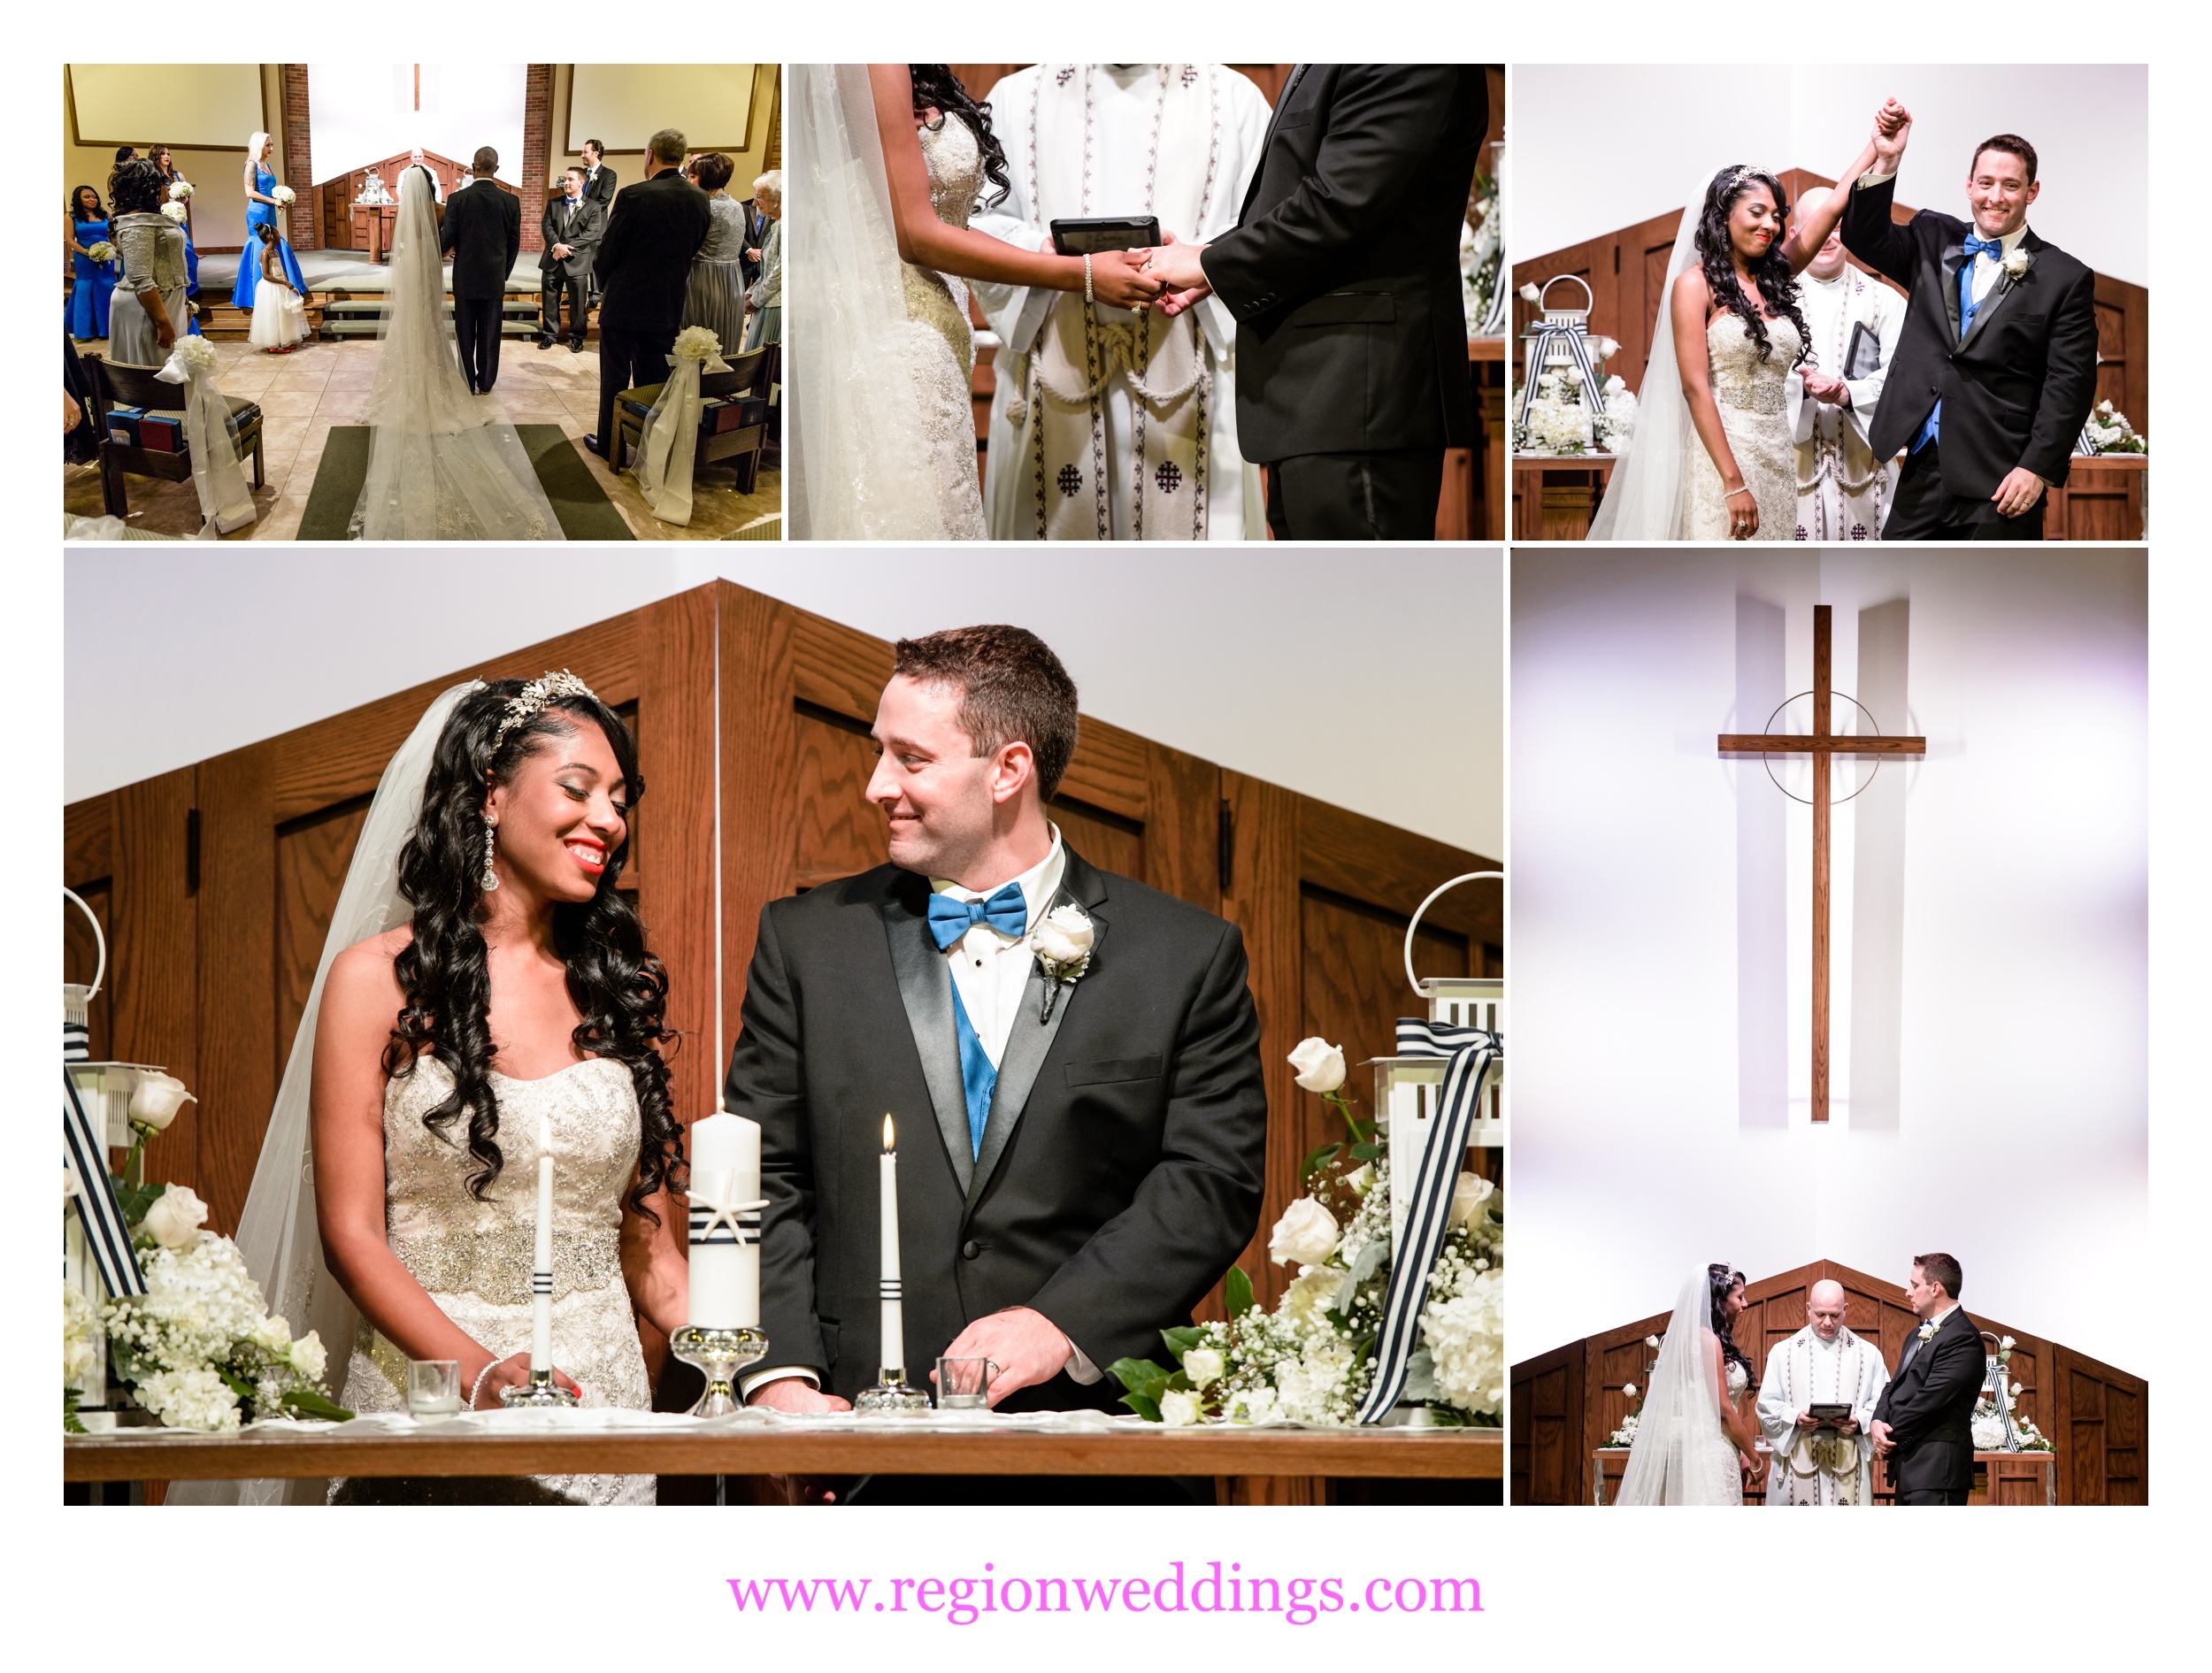 Wedding ceremony at Westminster Presbyterian Church in Munster, Indiana.